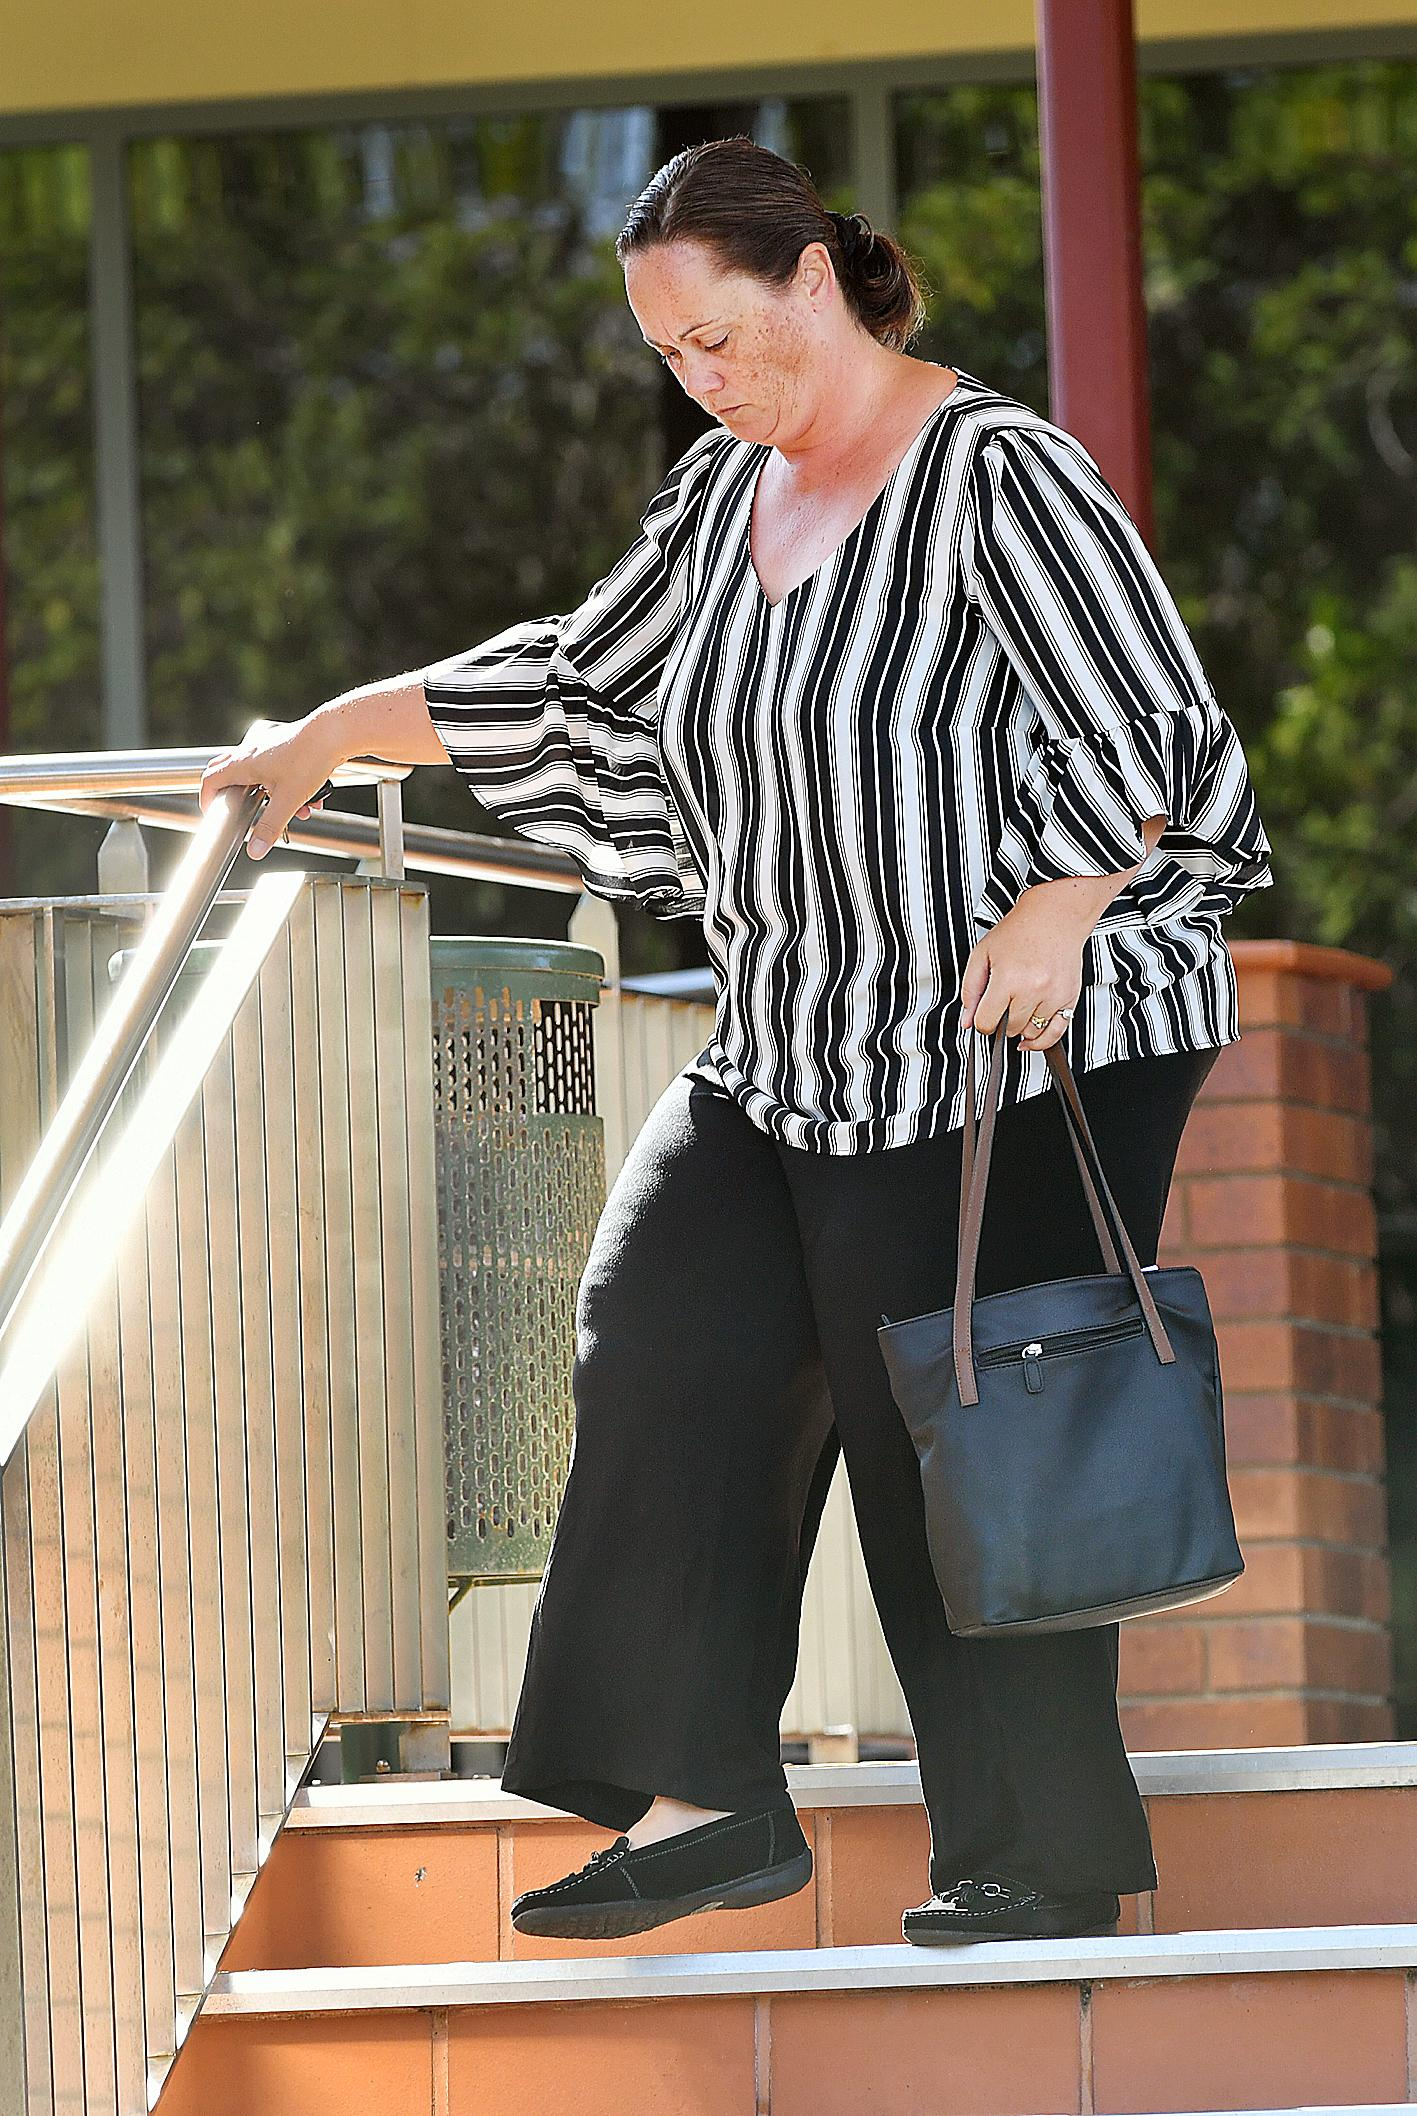 Shona Lee Divljak leaves Hervey Bay courthouse.